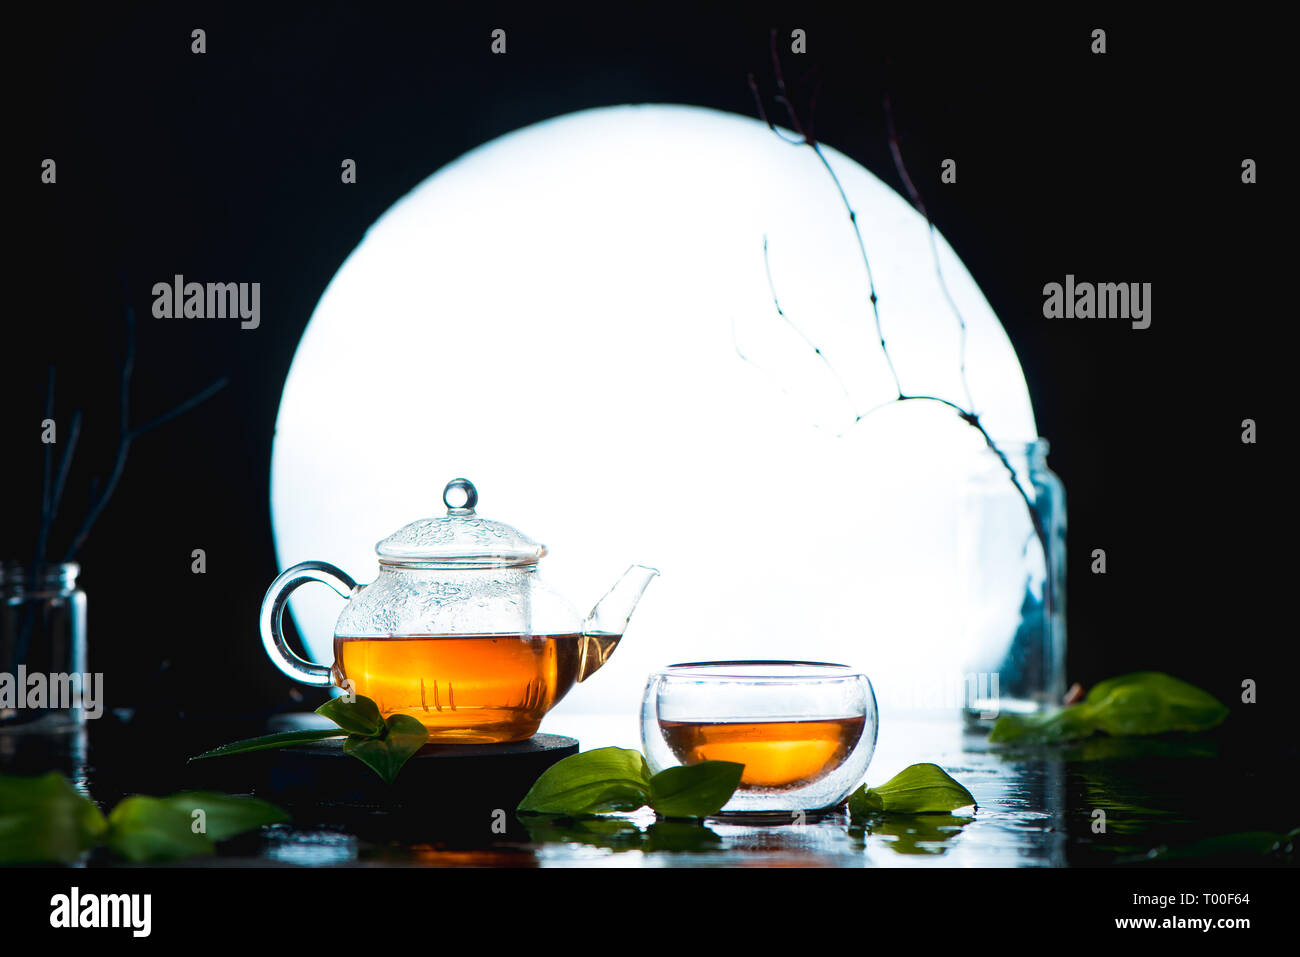 Tea in a double wall bowl and teapot against the full Moon. Chinese tea ceremony concept with copy space - Stock Image